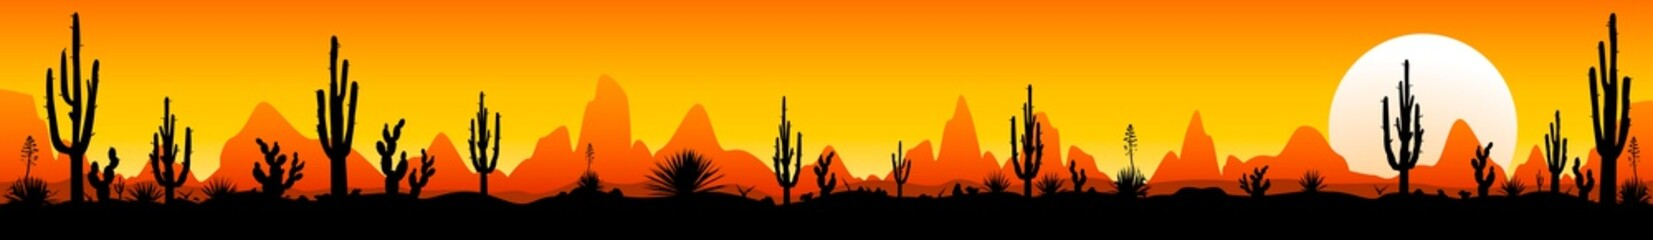 Panorama of the Mexican desert with cacti. Sunset in the Mexican desert. Silhouettes of stones, cacti and plants. Desert landscape with cacti. The stony desert Wall mural